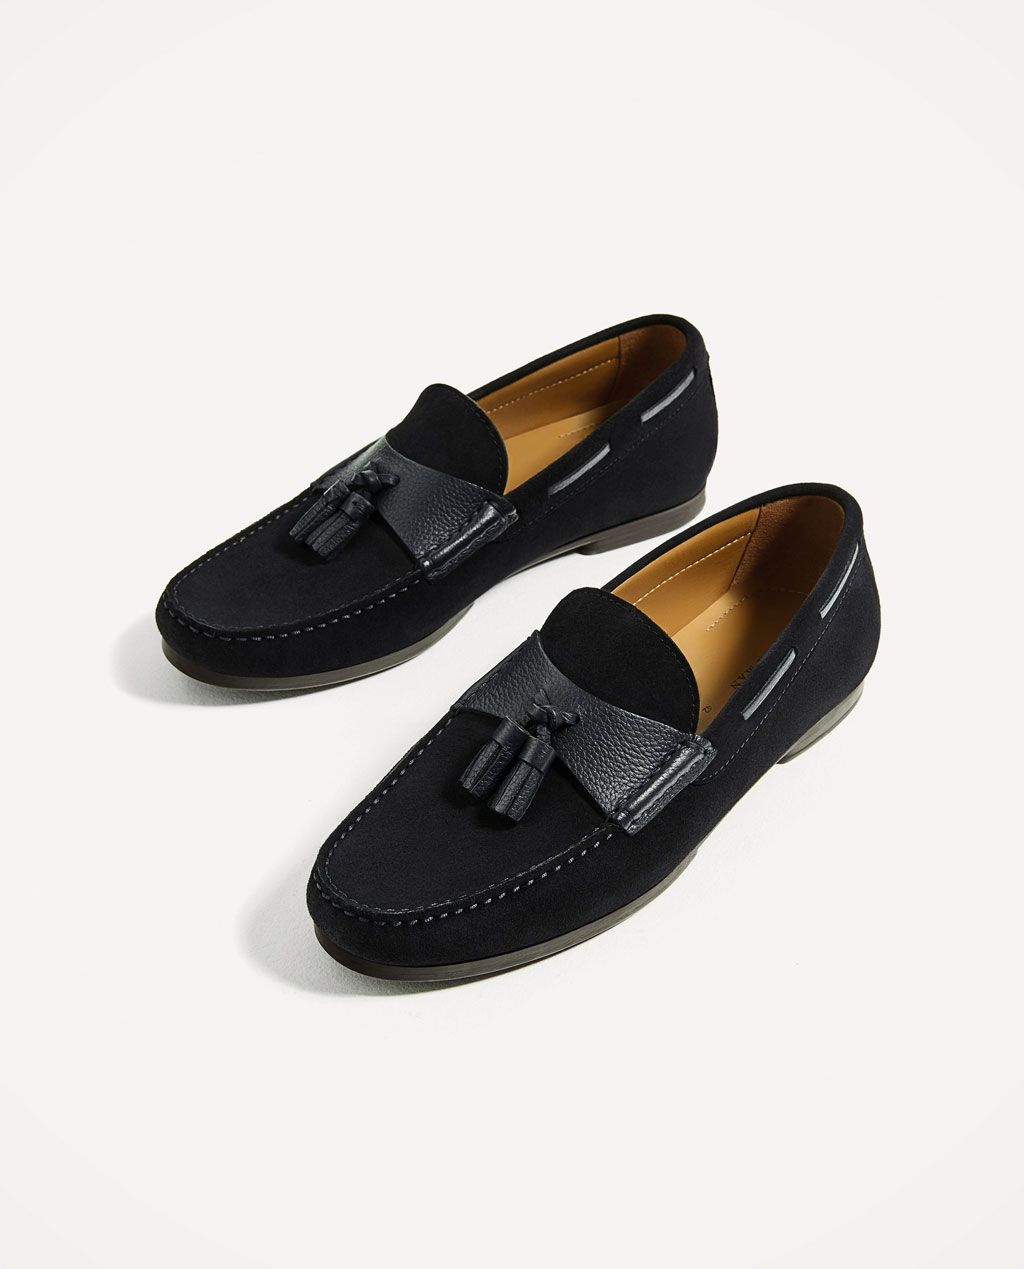 4a5caec6c Image 1 of BLUE LEATHER TASSEL LOAFERS from Zara | Fashion ekkor: 2019